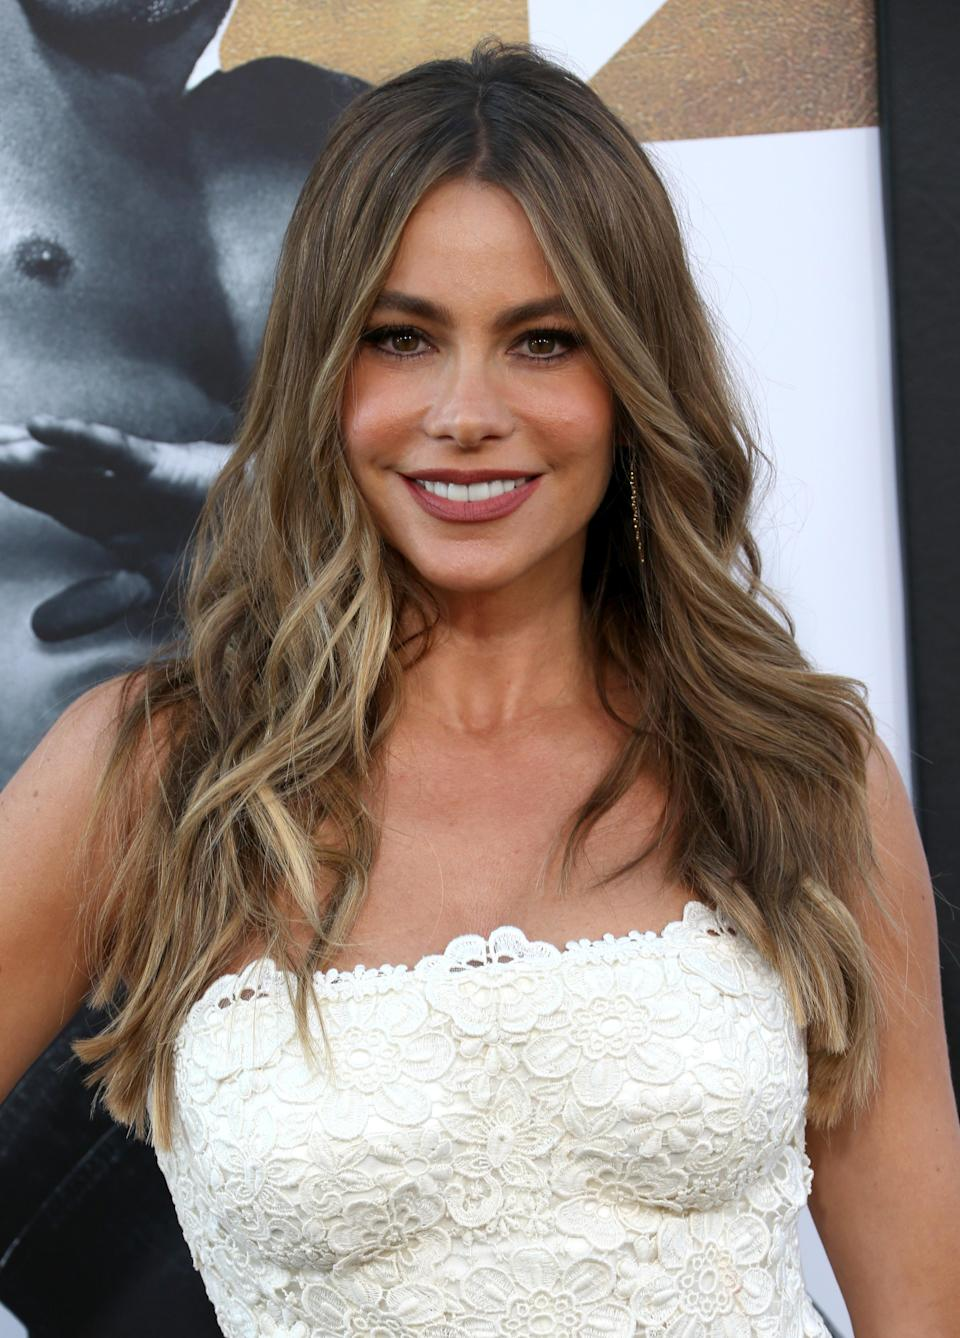 "<p>As the face of Head & Shoulders, it's no wonder<a href=""https://www.yahoo.com/lifestyle/tagged/sofia-vergara"" data-ylk=""slk:Sofia Vergara"" class=""link rapid-noclick-resp""> Sofia Vergara</a> always has perfect hair. The Colombian actress is known to grace the red carpet showing off her signature long, tousled waves and sun-kissed radiant skin. To get her effortless waves, just opt for a 1.5-inch <a href=""https://www.yahoo.com/lifestyle/tagged/curler"" data-ylk=""slk:hair curler"" class=""link rapid-noclick-resp"">hair curler</a> for a beachy look. (Photo: Getty Images) </p>"